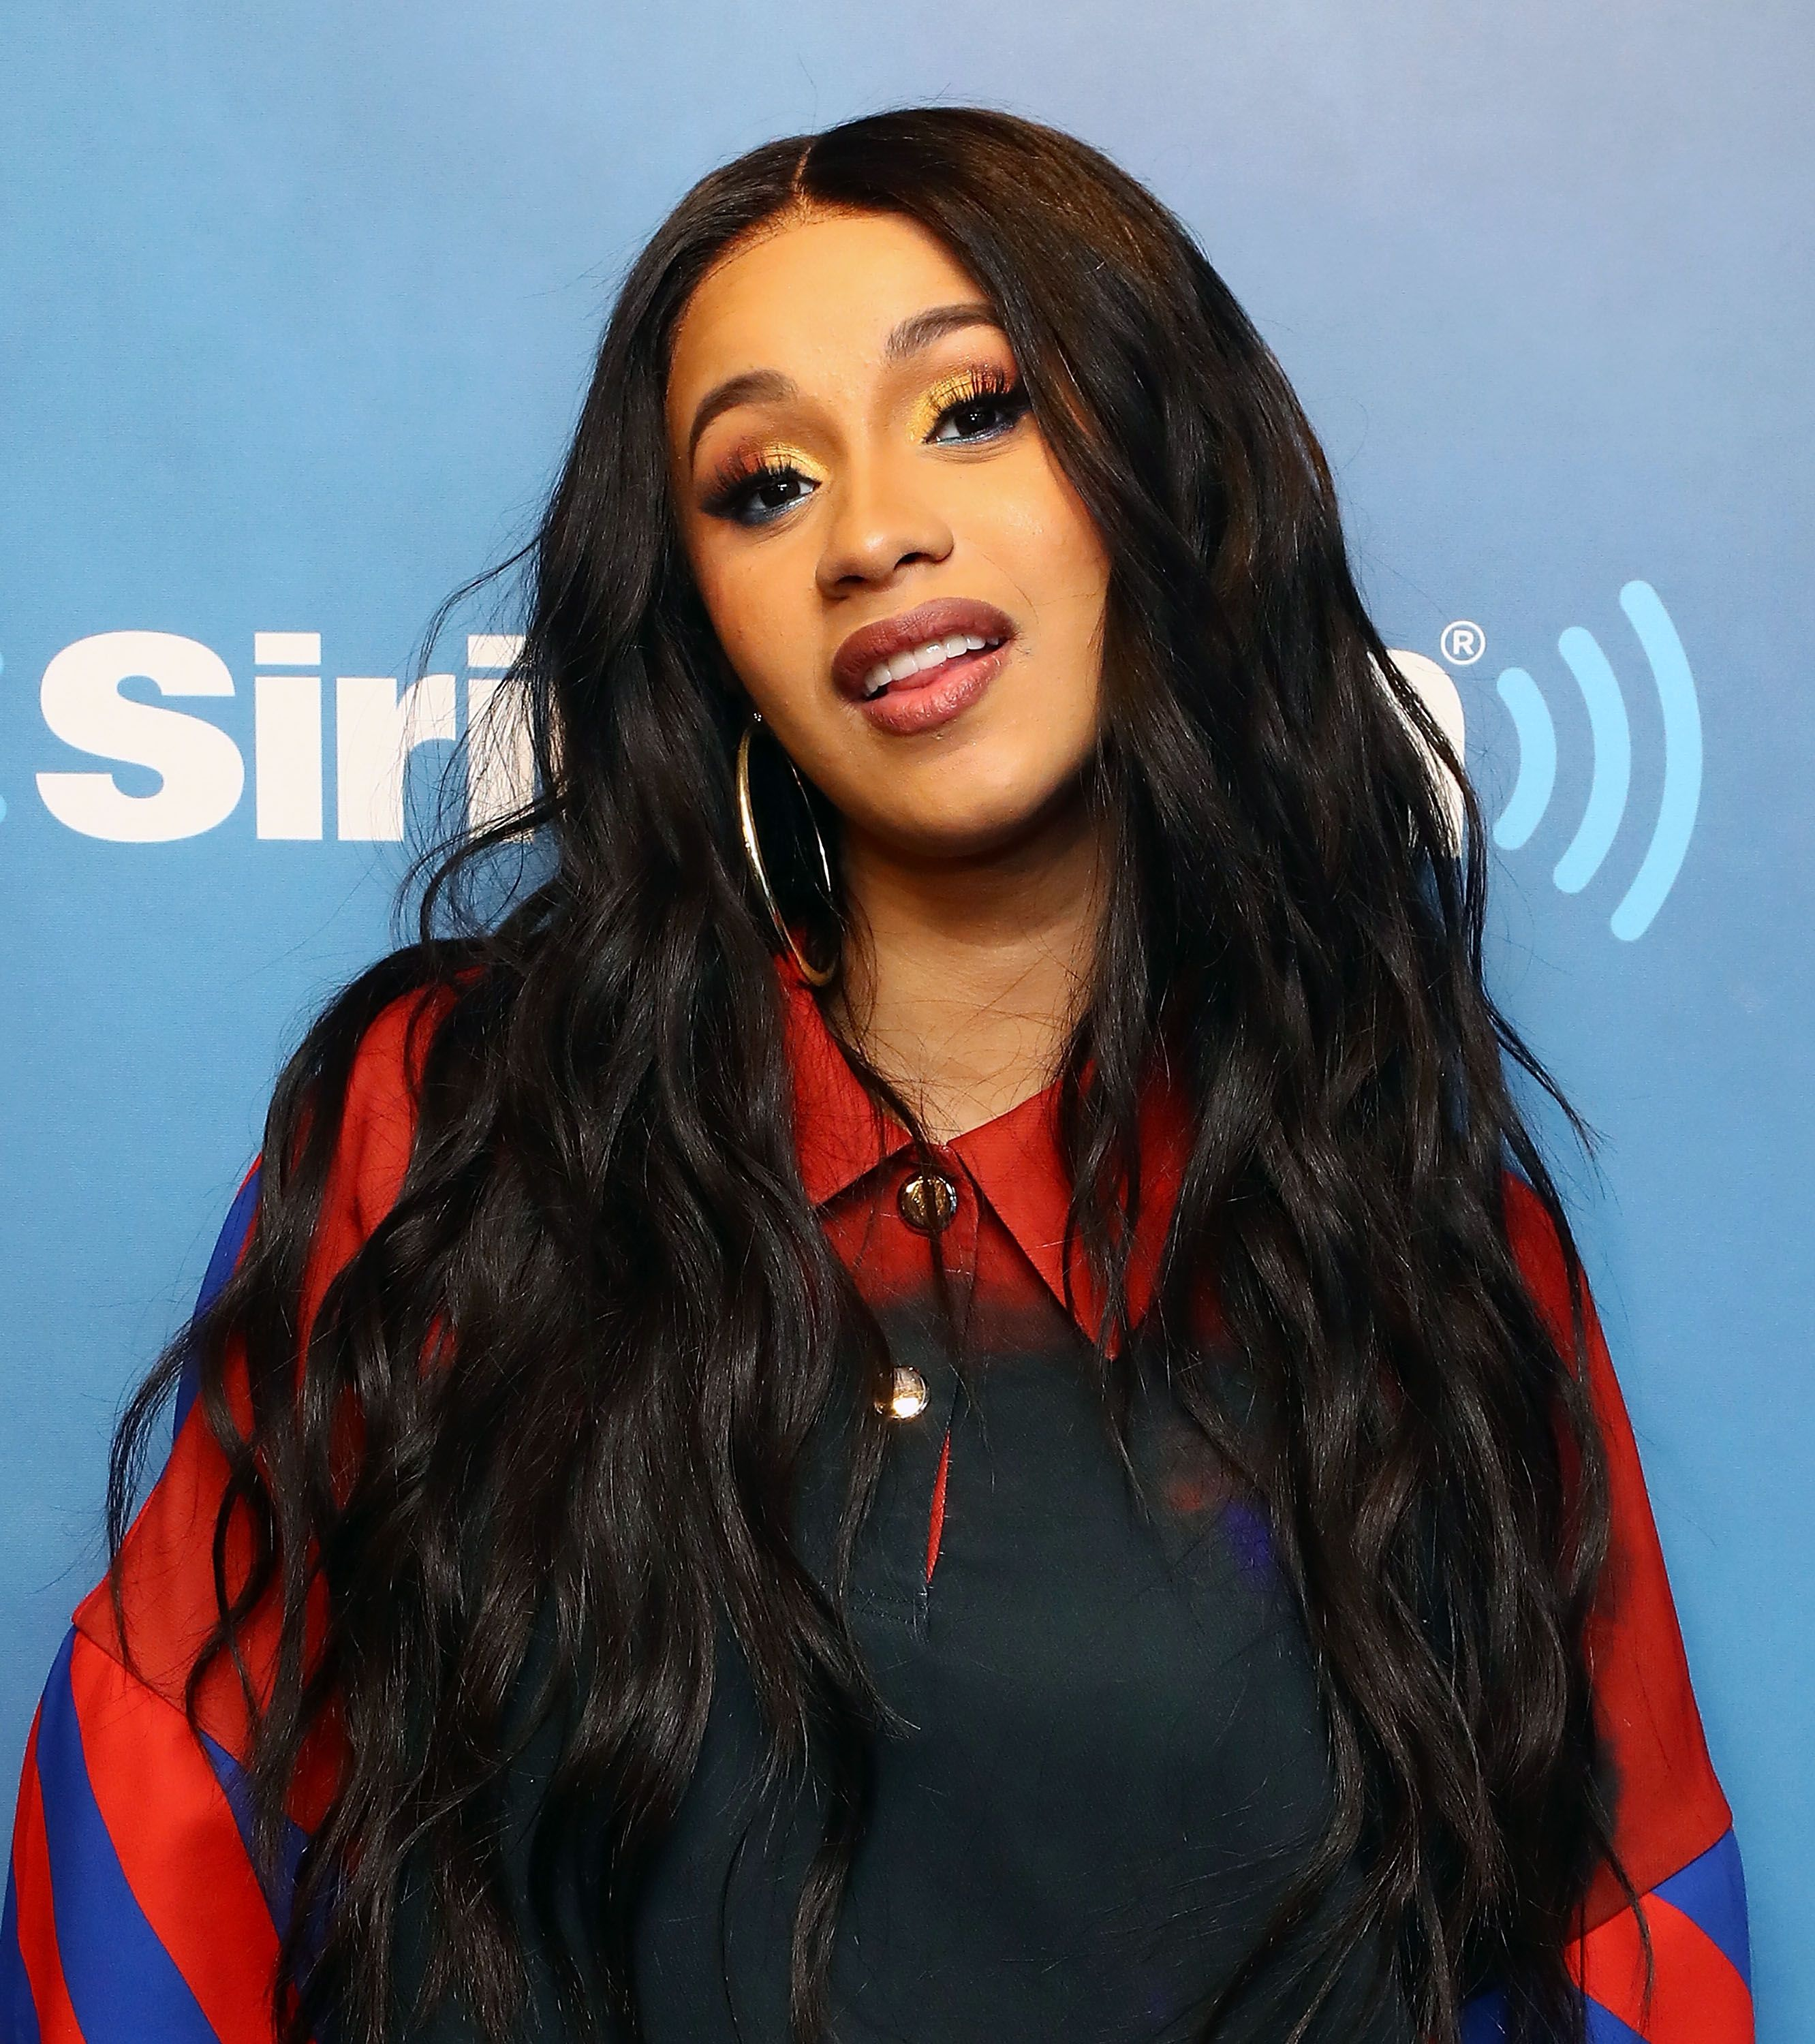 Rapper Cardi B at the SiriusXM Studios on April 10, 2018 | Photo: Getty Images